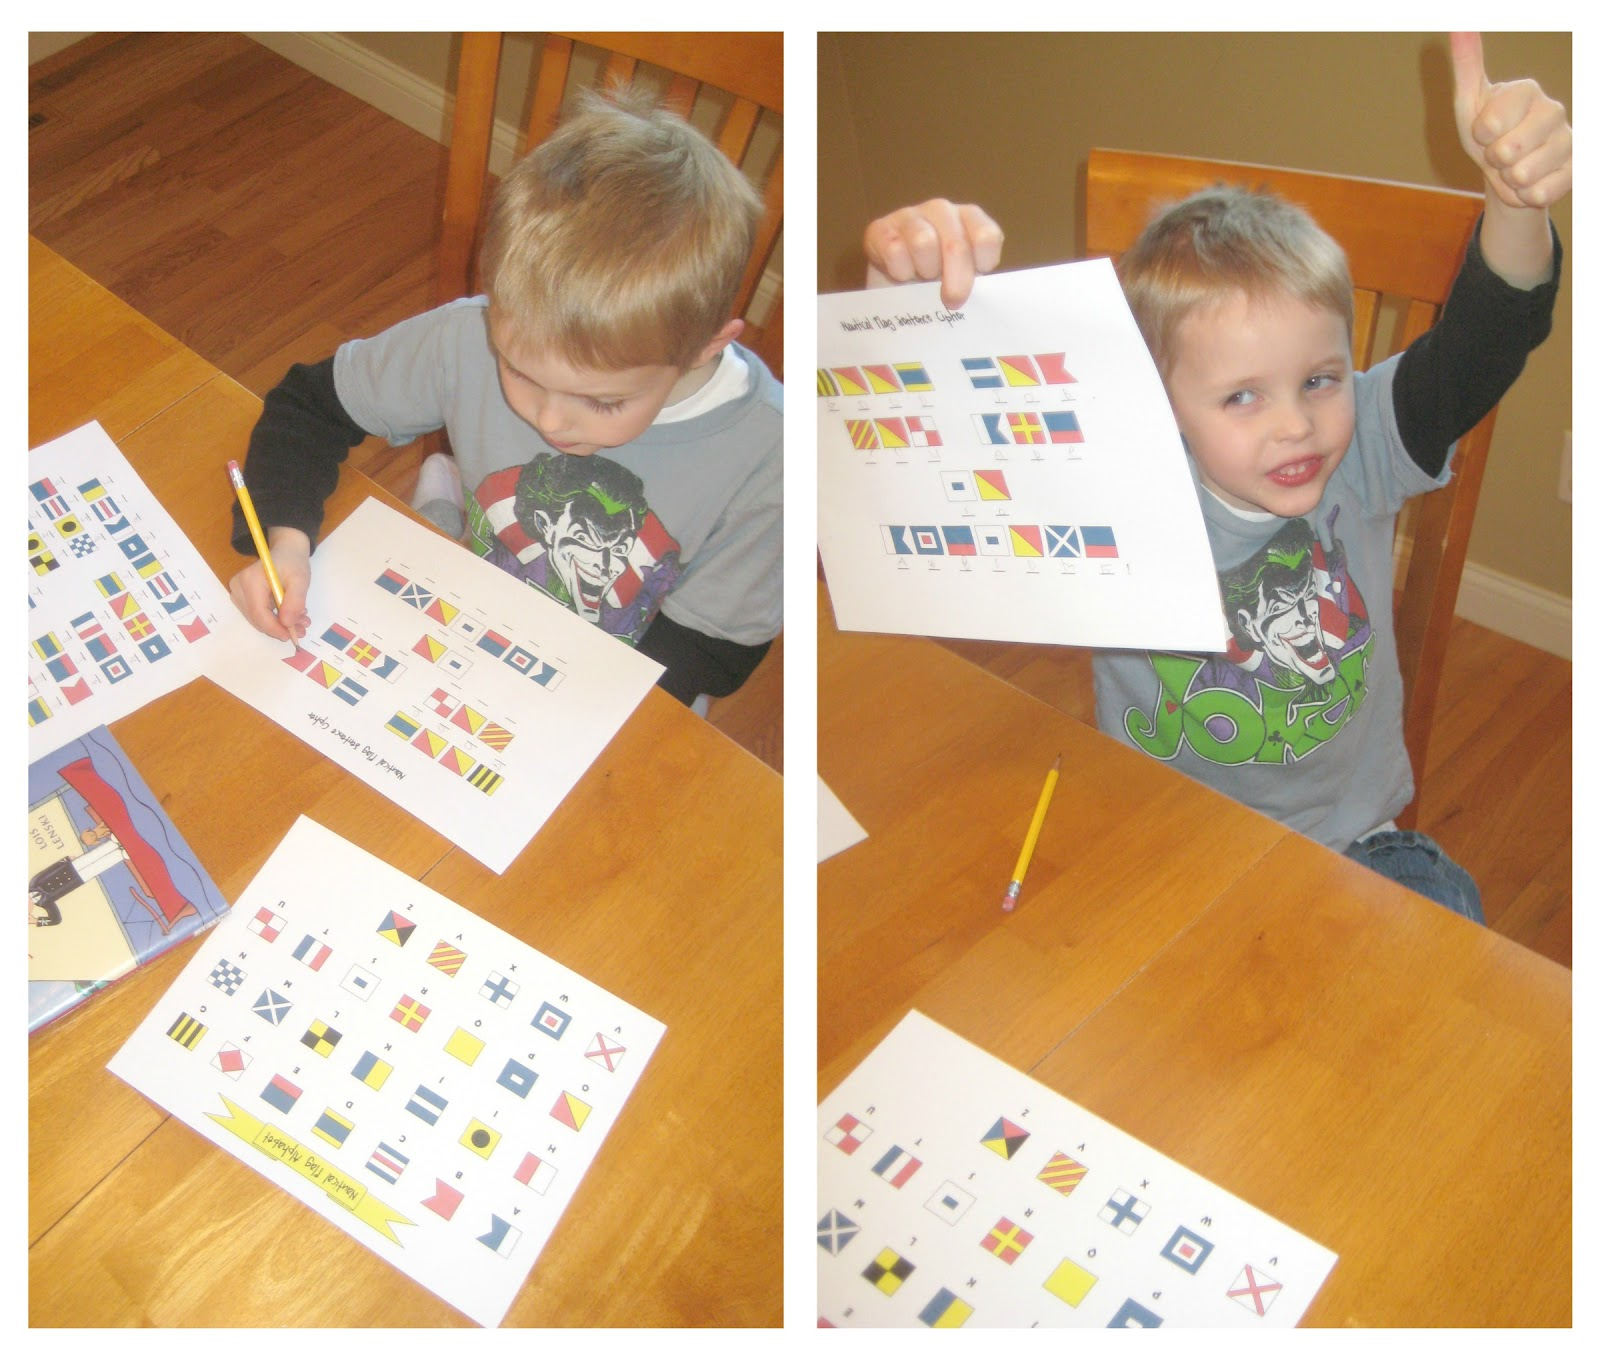 Relentlessly Fun Deceptively Educational Spelling Practice With Nautical Flags